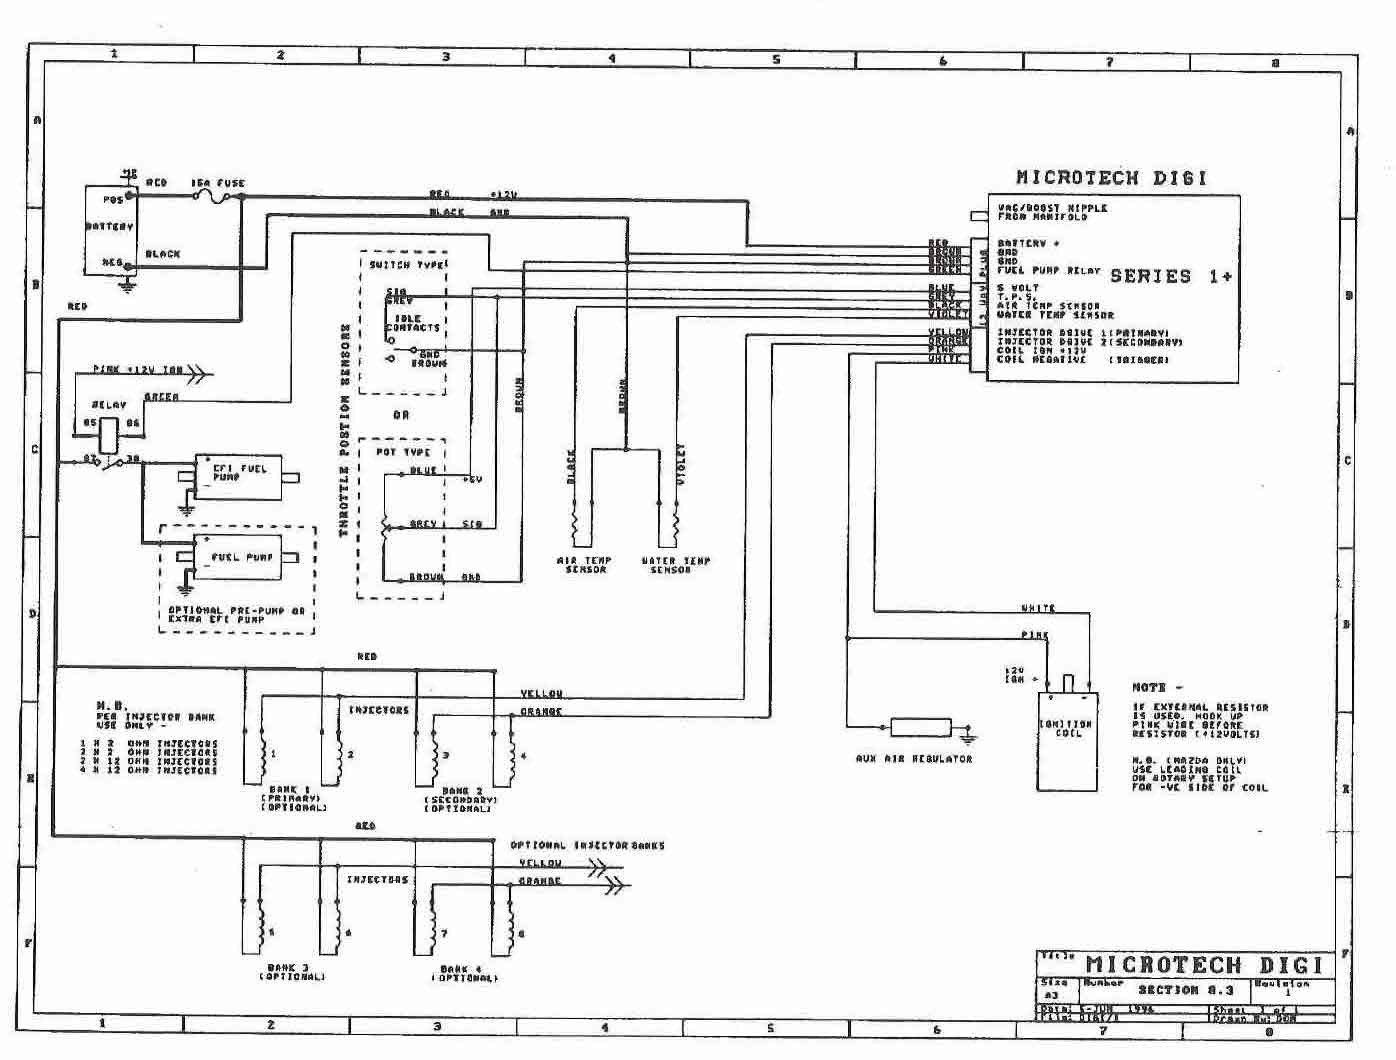 microtech Digi1 1988 mazda rx7 wiring diagram 1993 mazda rx7 owners manual microtech lt10s wiring diagram at panicattacktreatment.co